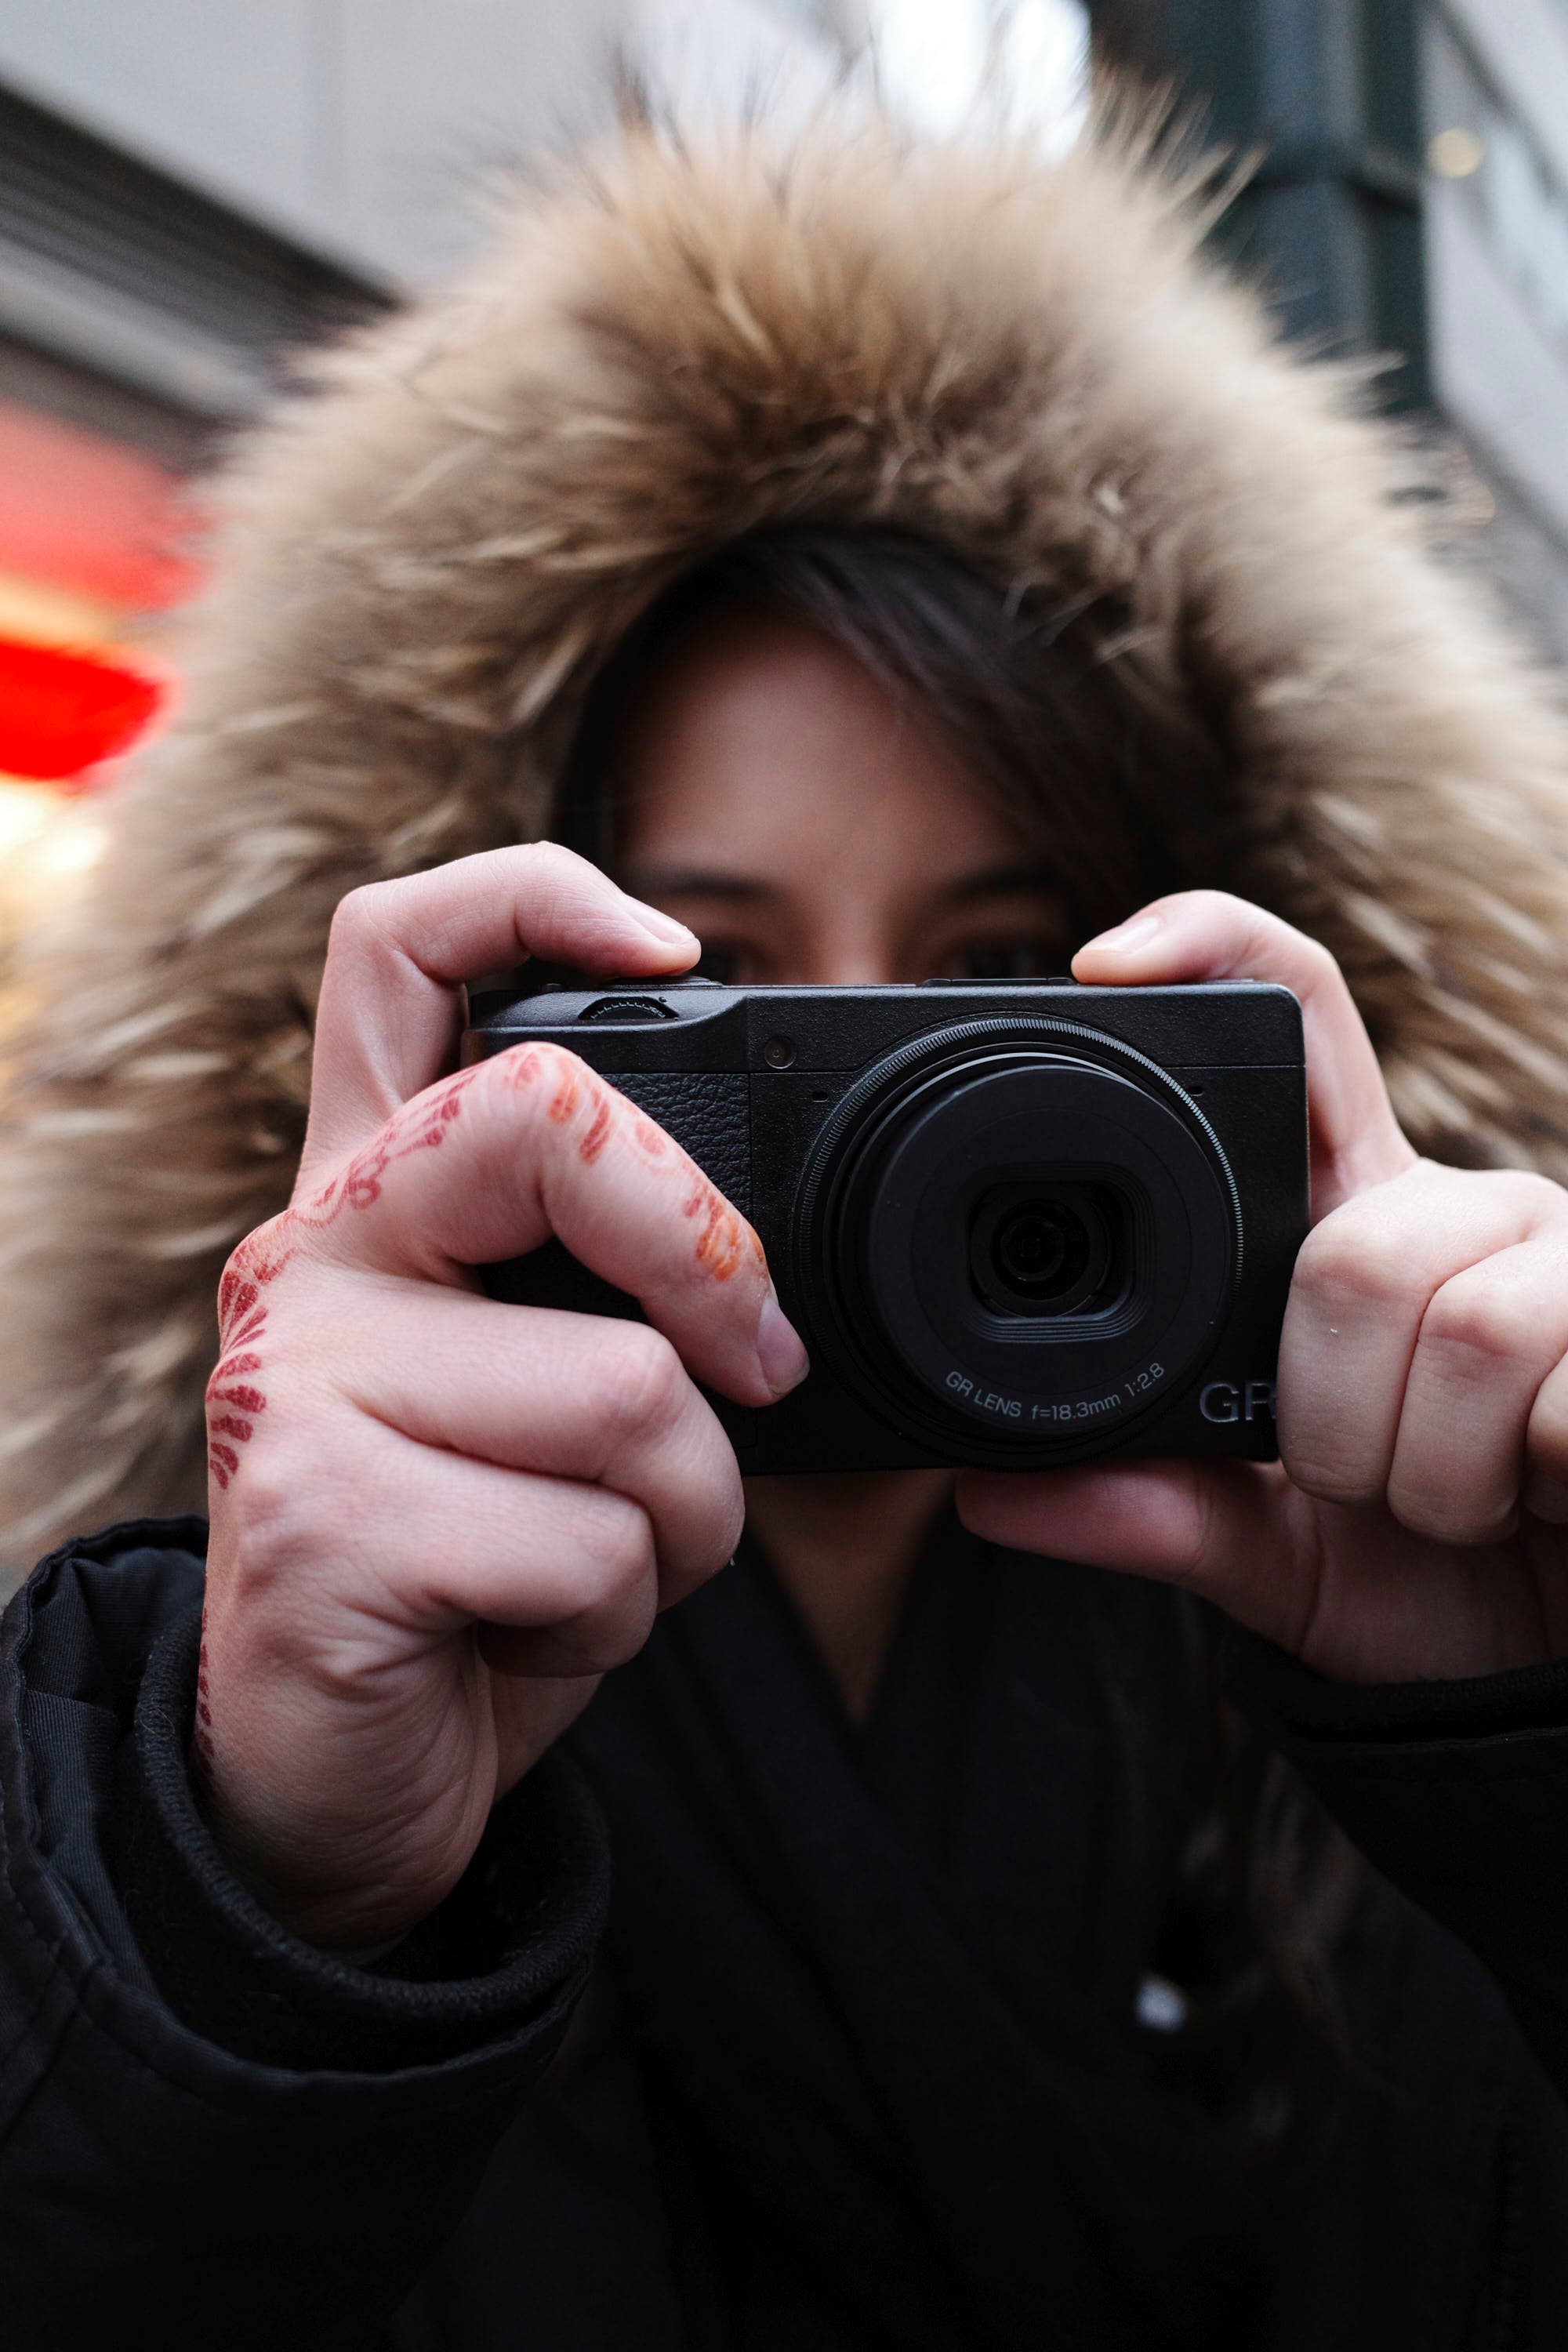 Small Cameras Are a Big Deal (They're Affordable Too)